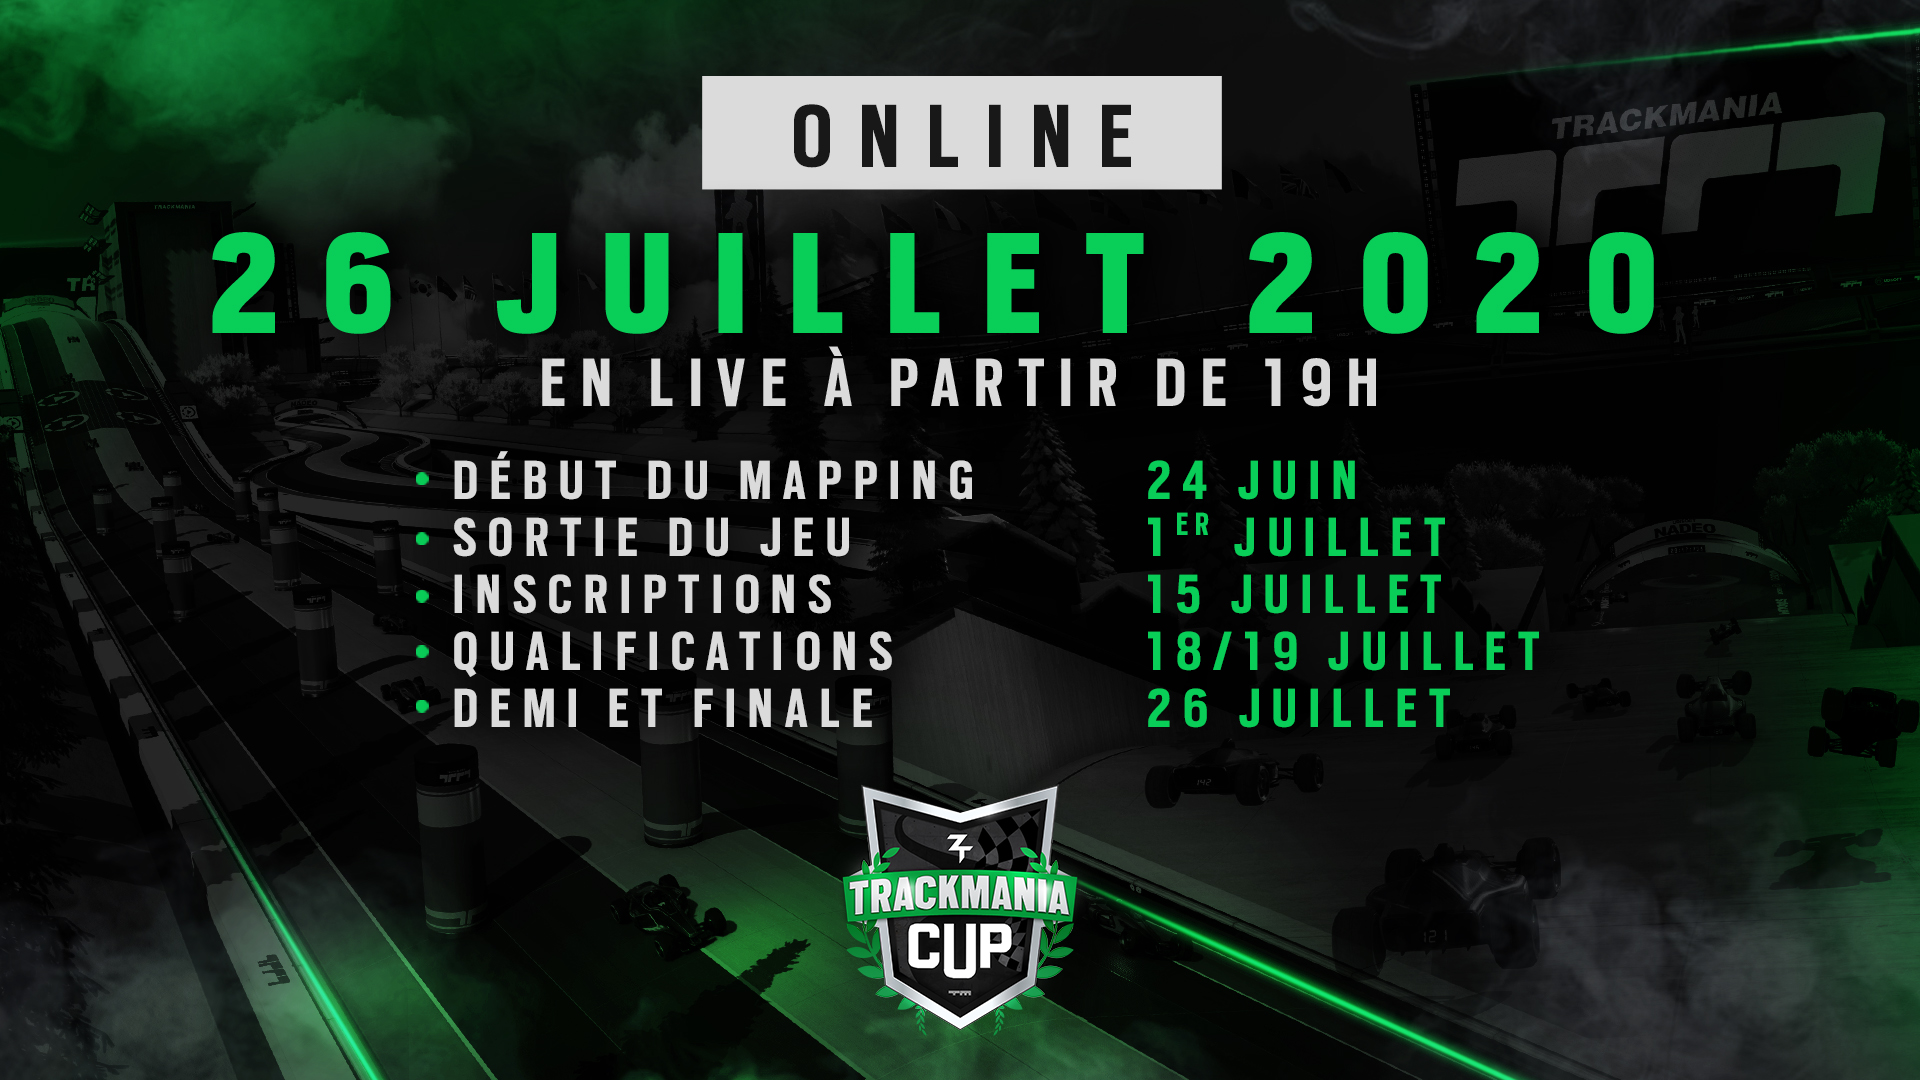 trackmania cup online